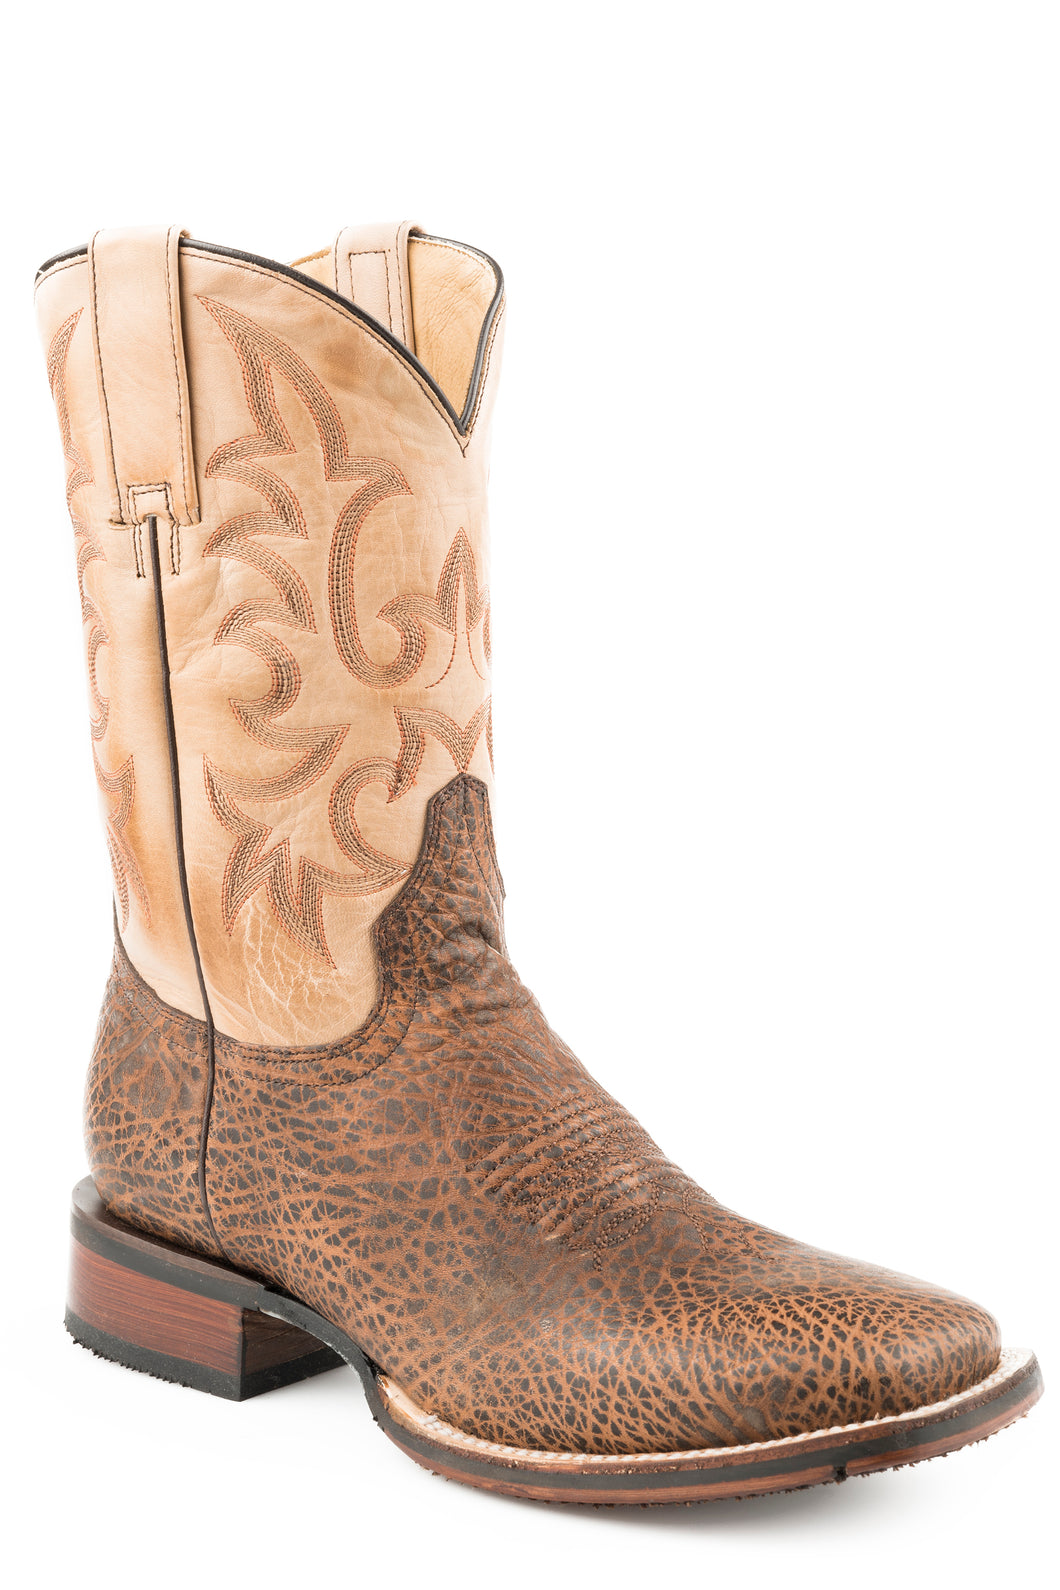 Ian Boot Mens Boots Oily Brown Bull Hide Vamp